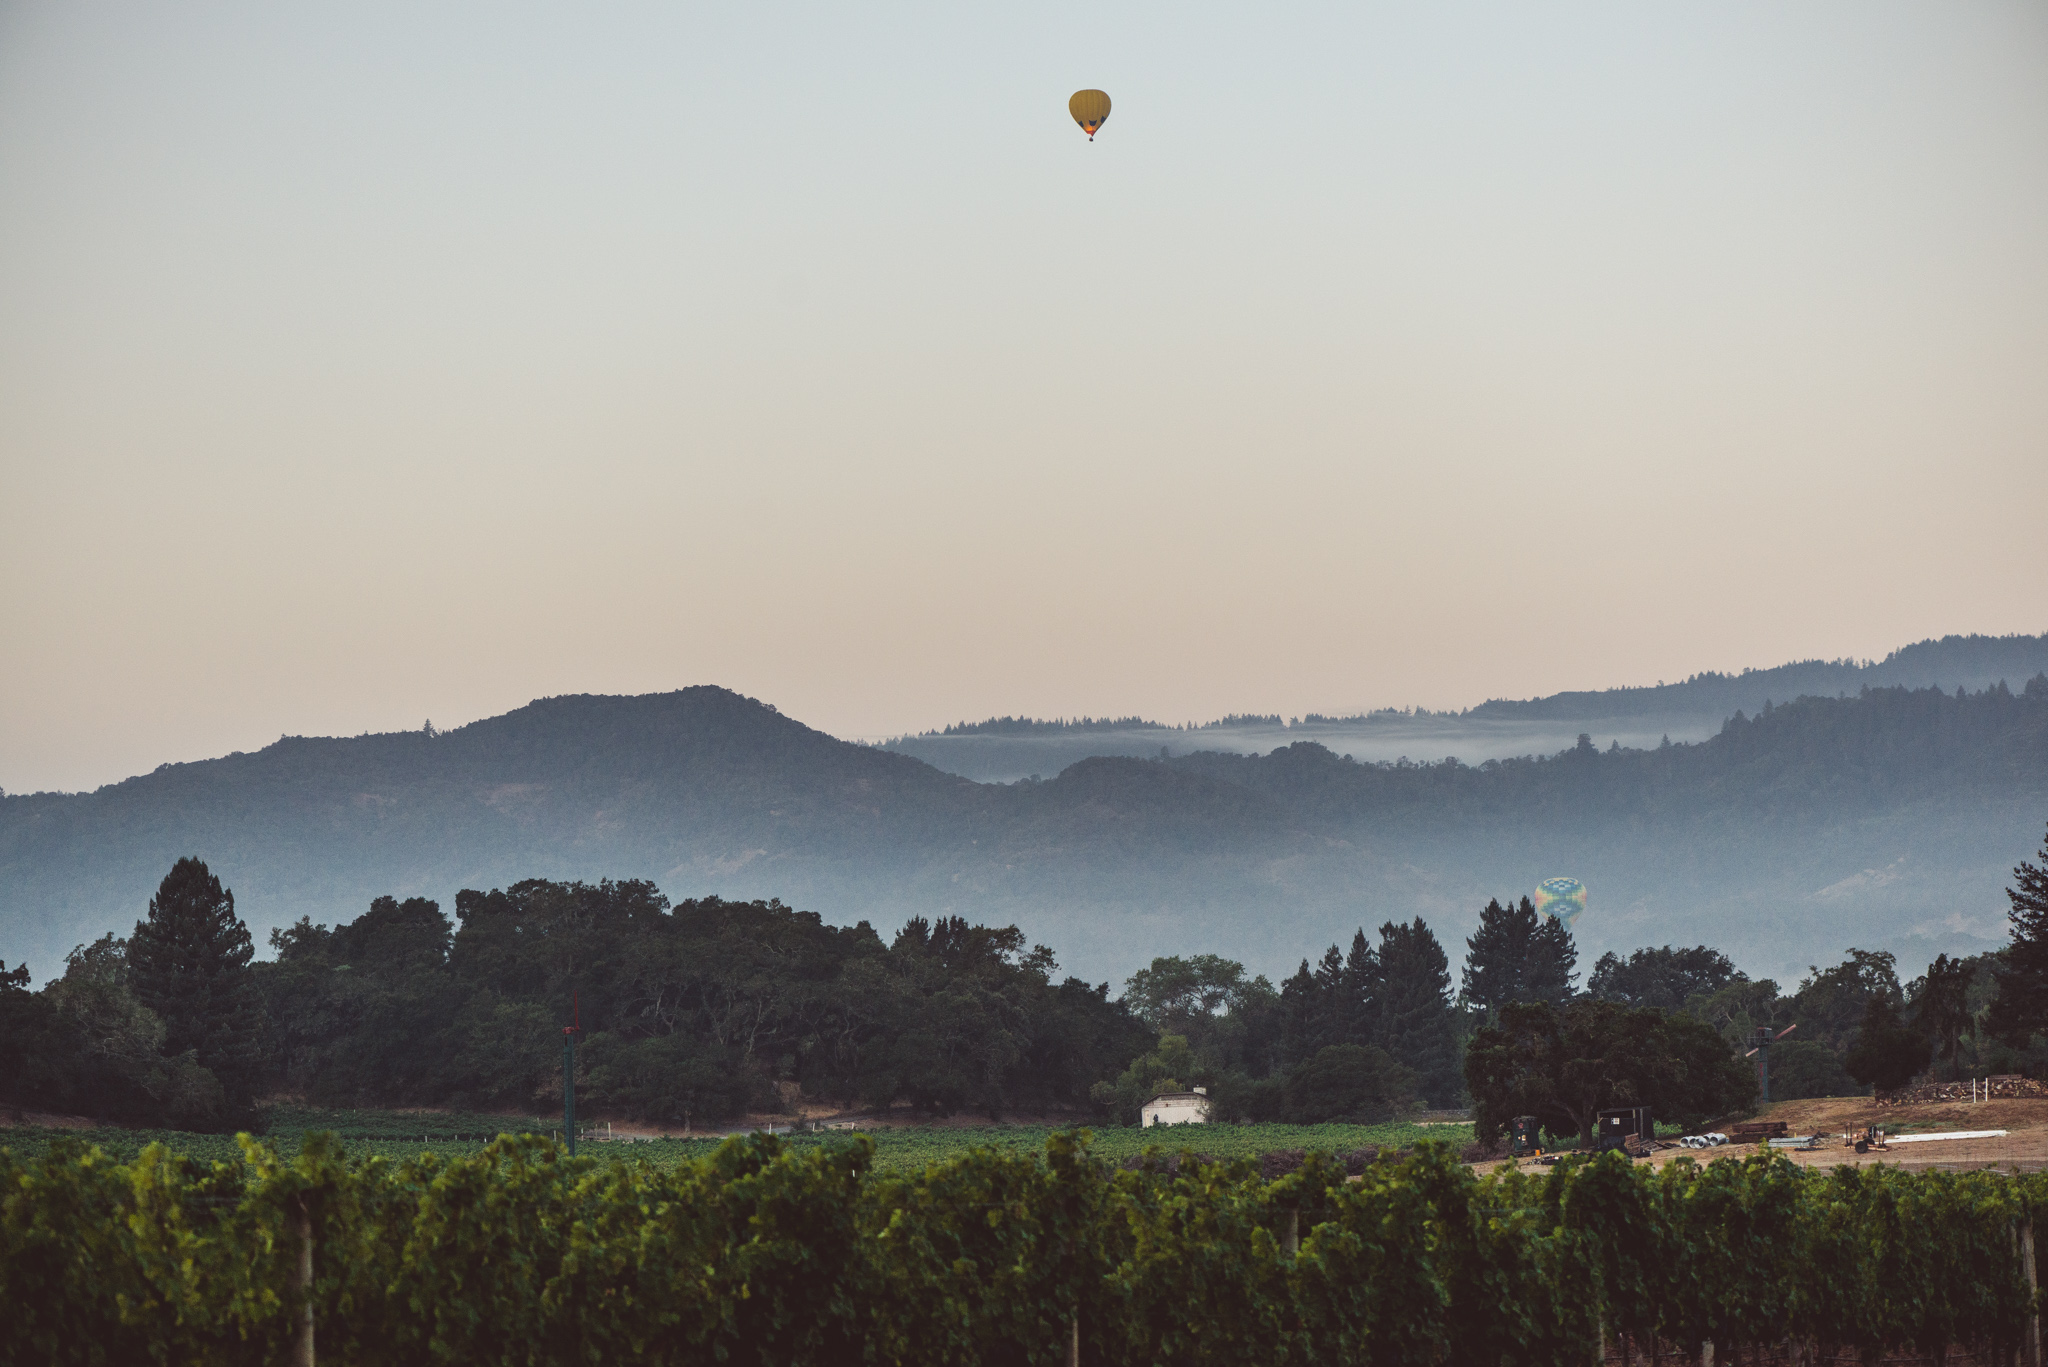 California : Napa Valley : Fog and a balloon over Stags Leap District and Yountville